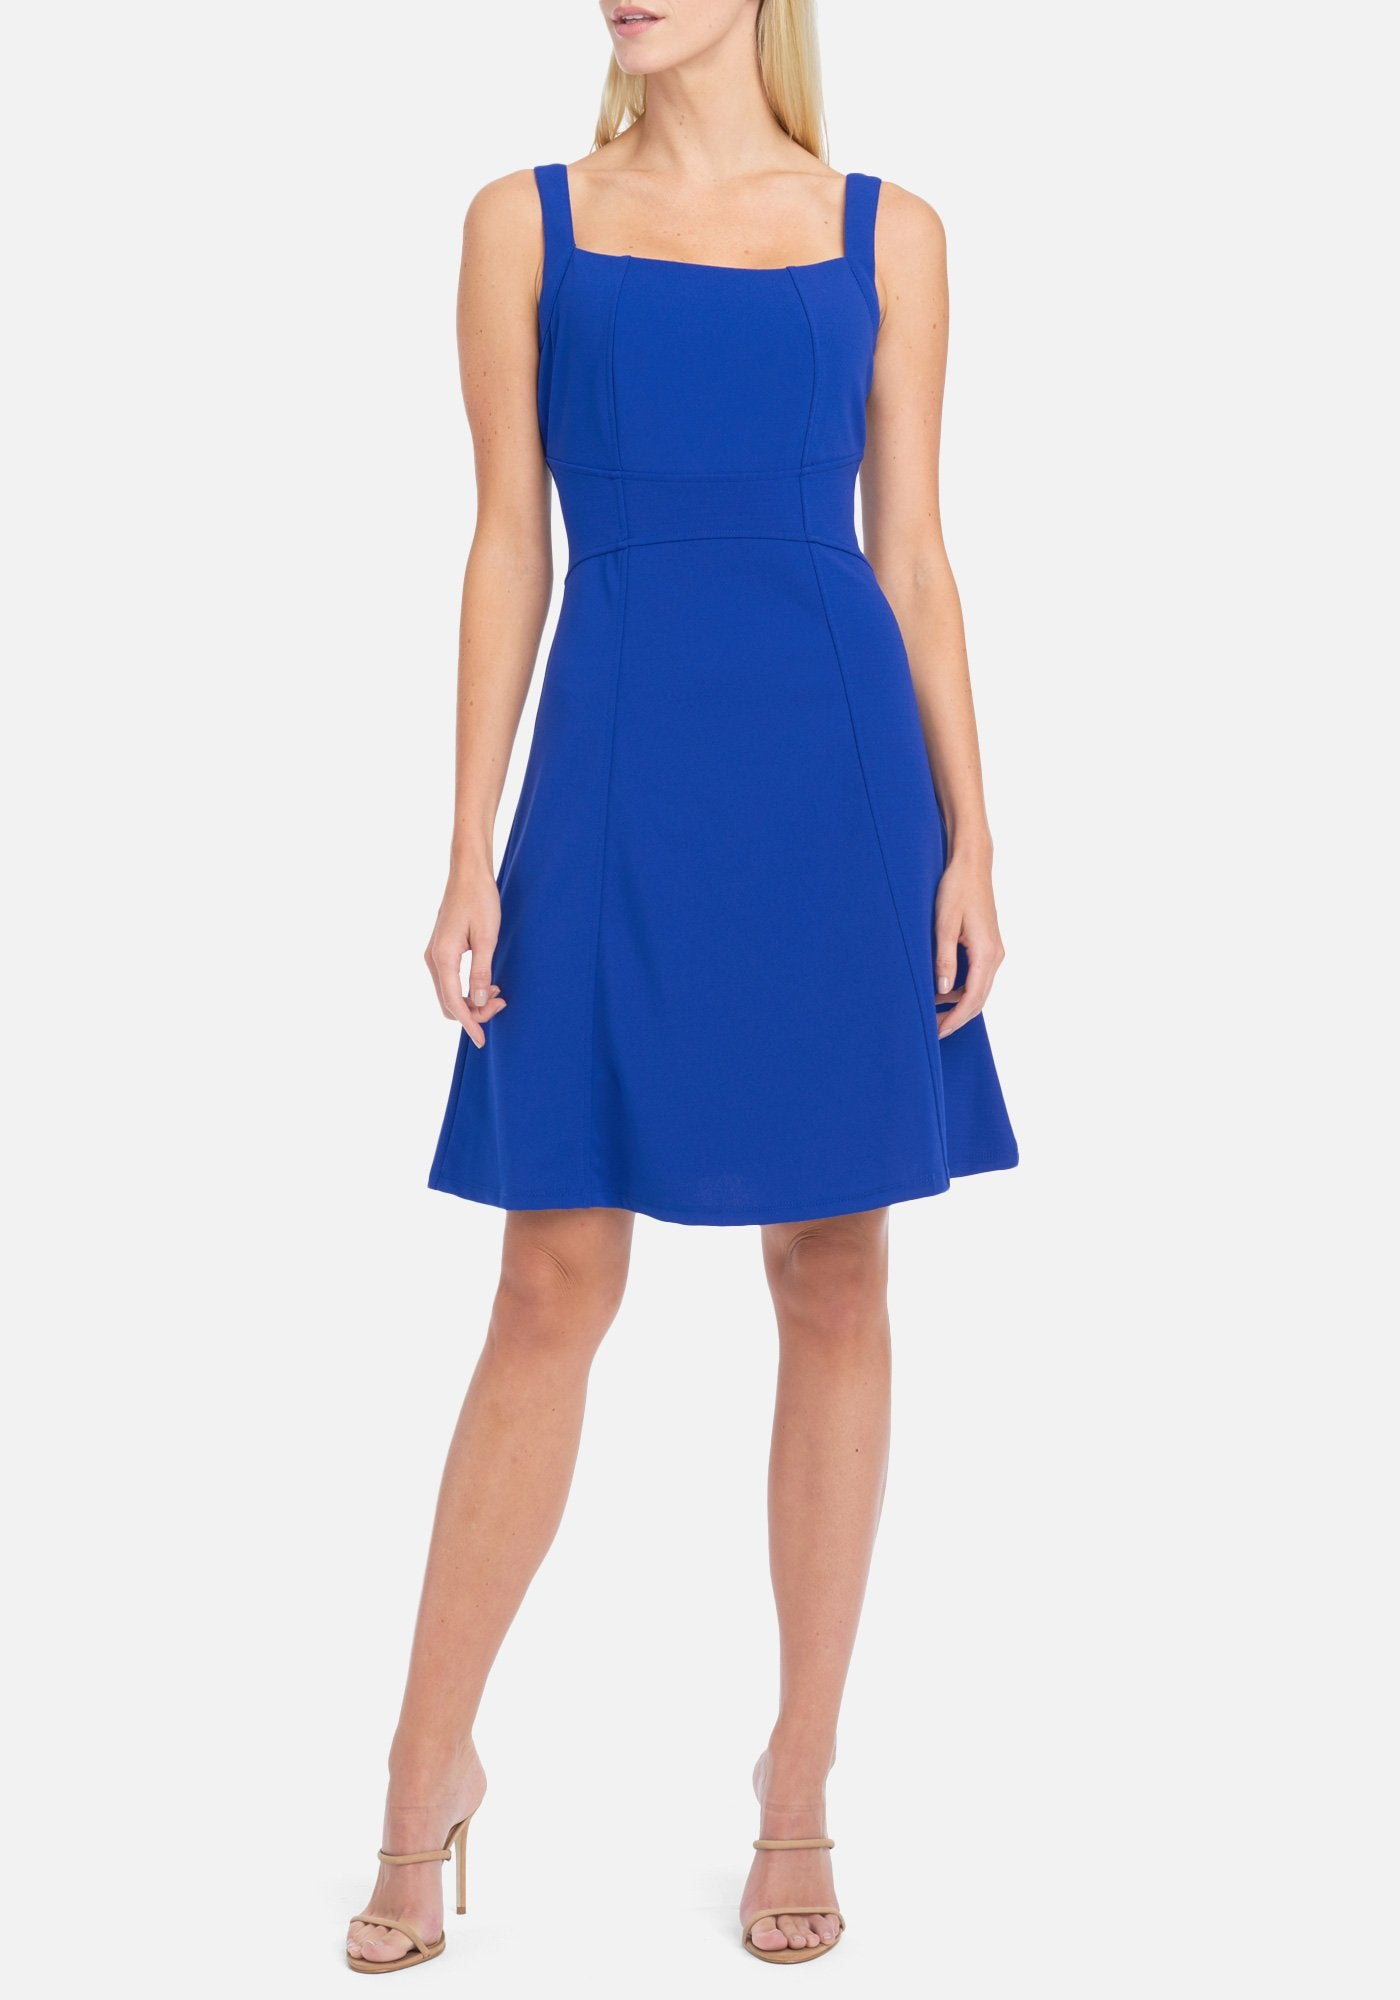 Bebe Women's Fit And Flare Dress, Size 4 in Royal Spandex